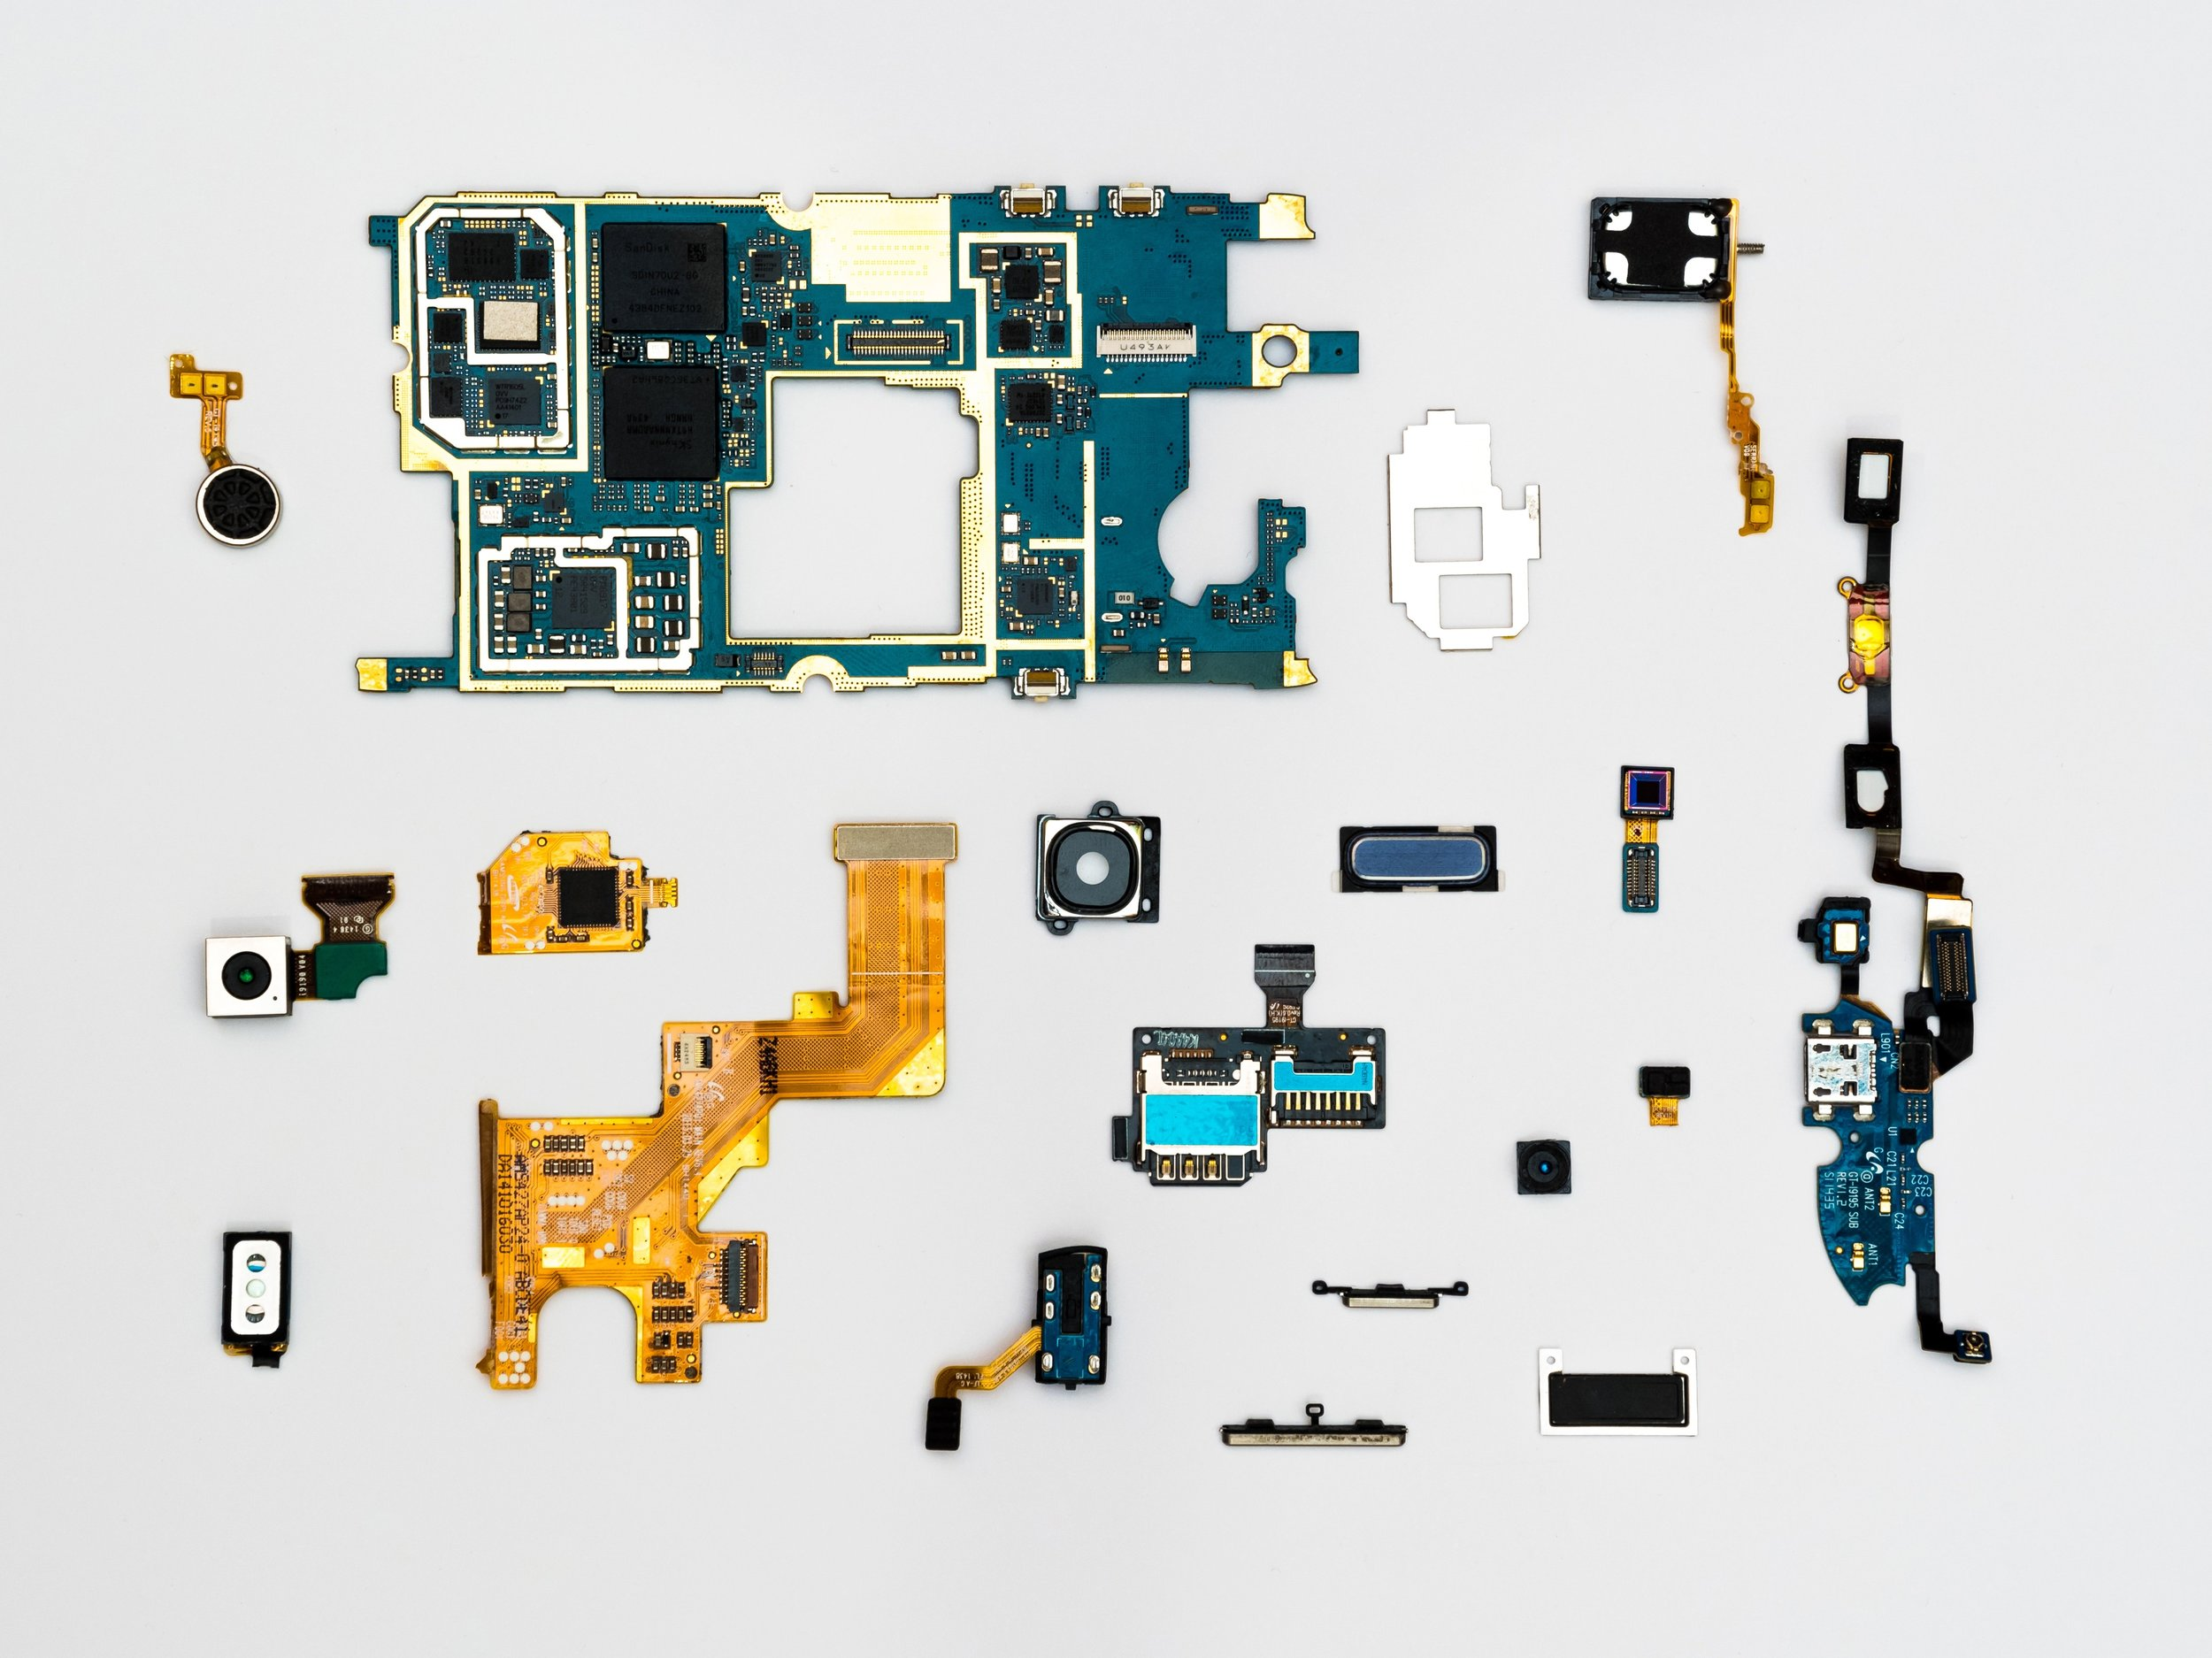 Image of smartphone modules. Stock image.